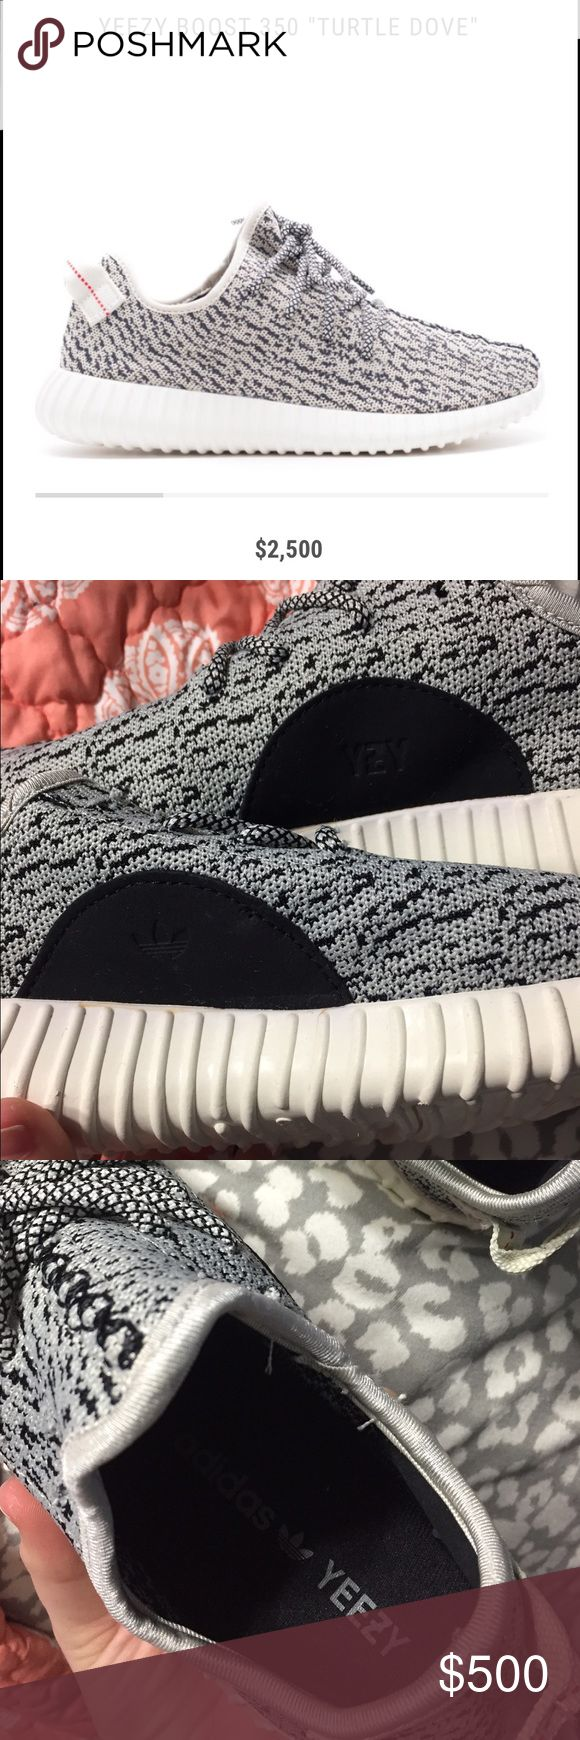 Authentic Yeezy Boost 350. I got these for Christmas. I've been dying to get a pair but I need to go one size bigger. My dad didn't realize my shoe size. They have never been worn. They are a size 7 1/2 and I wear an 8-8 1/5 normally so I just need to go one size bigger. I didn't pay for them so I can't ask for the original price. My dad payed a little over $1,000 for them. They are 100% authentic. Willing to lower price. Make offer. 😊 Yeezy Shoes Sneakers